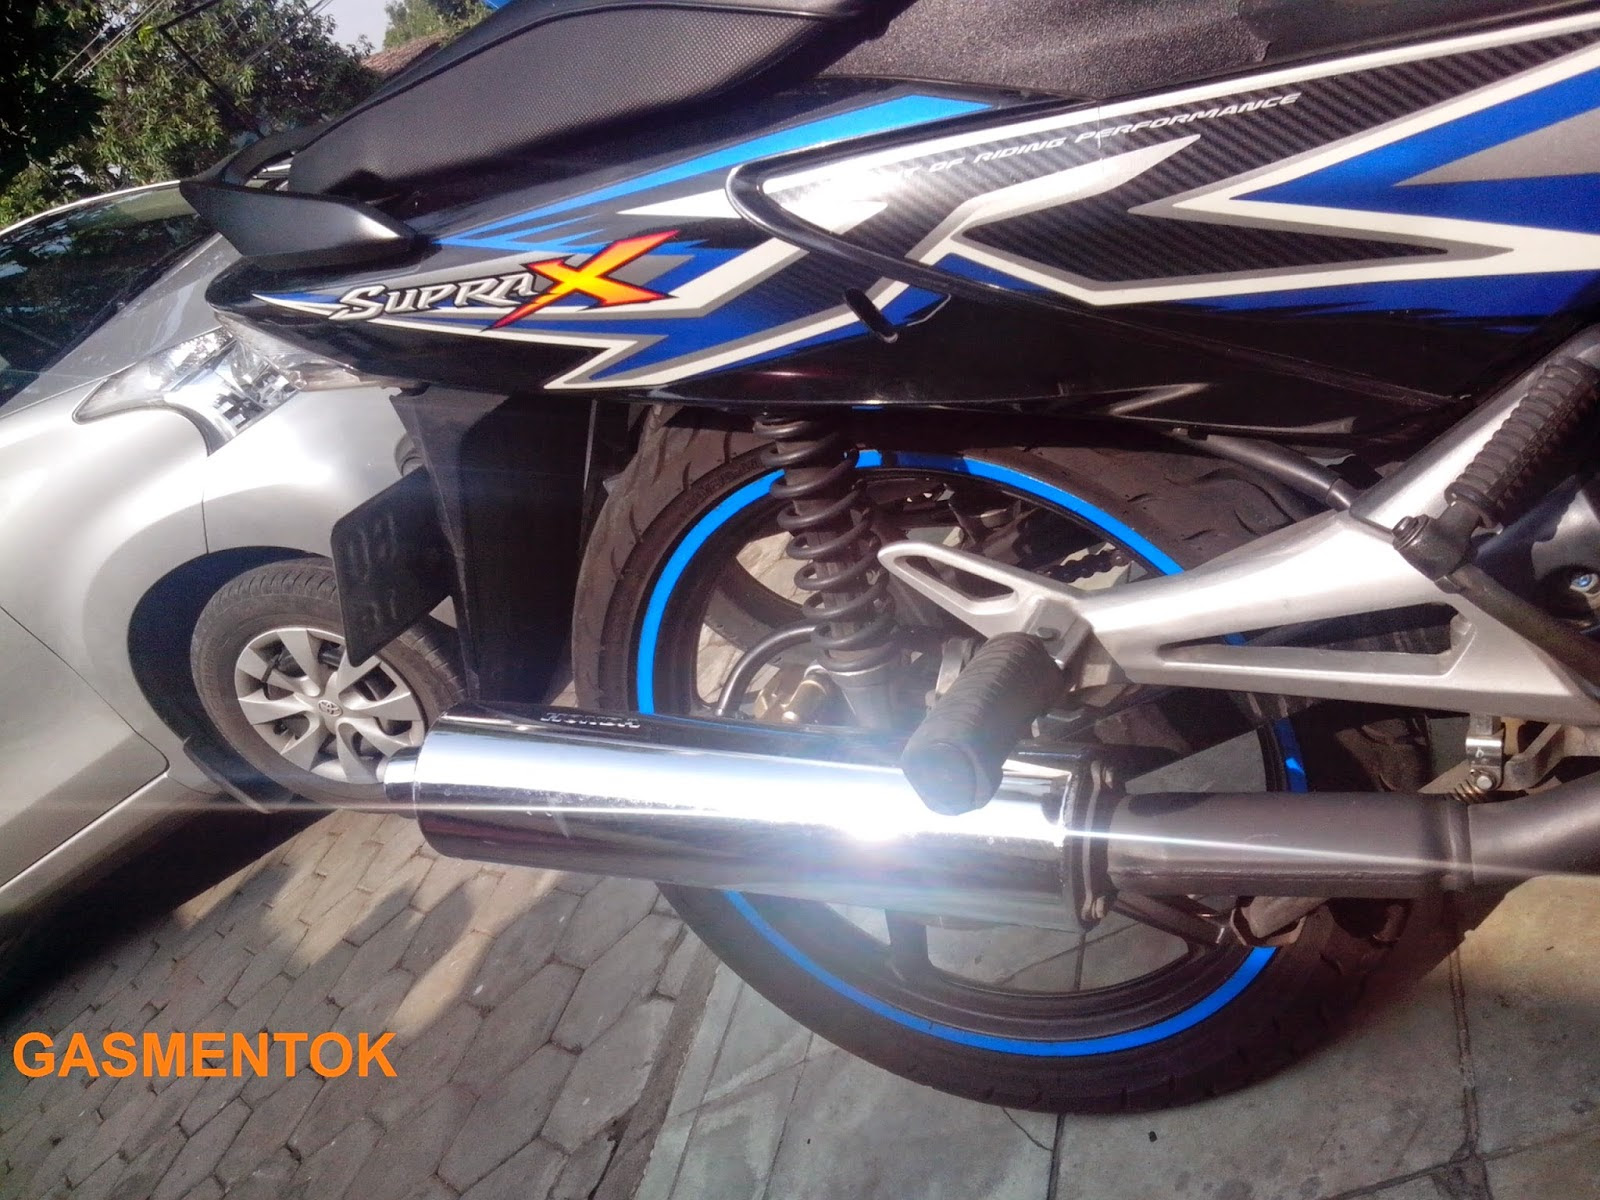 Download Modifikasi Ban Motor Supra X 125 Terbaru Fire Modif